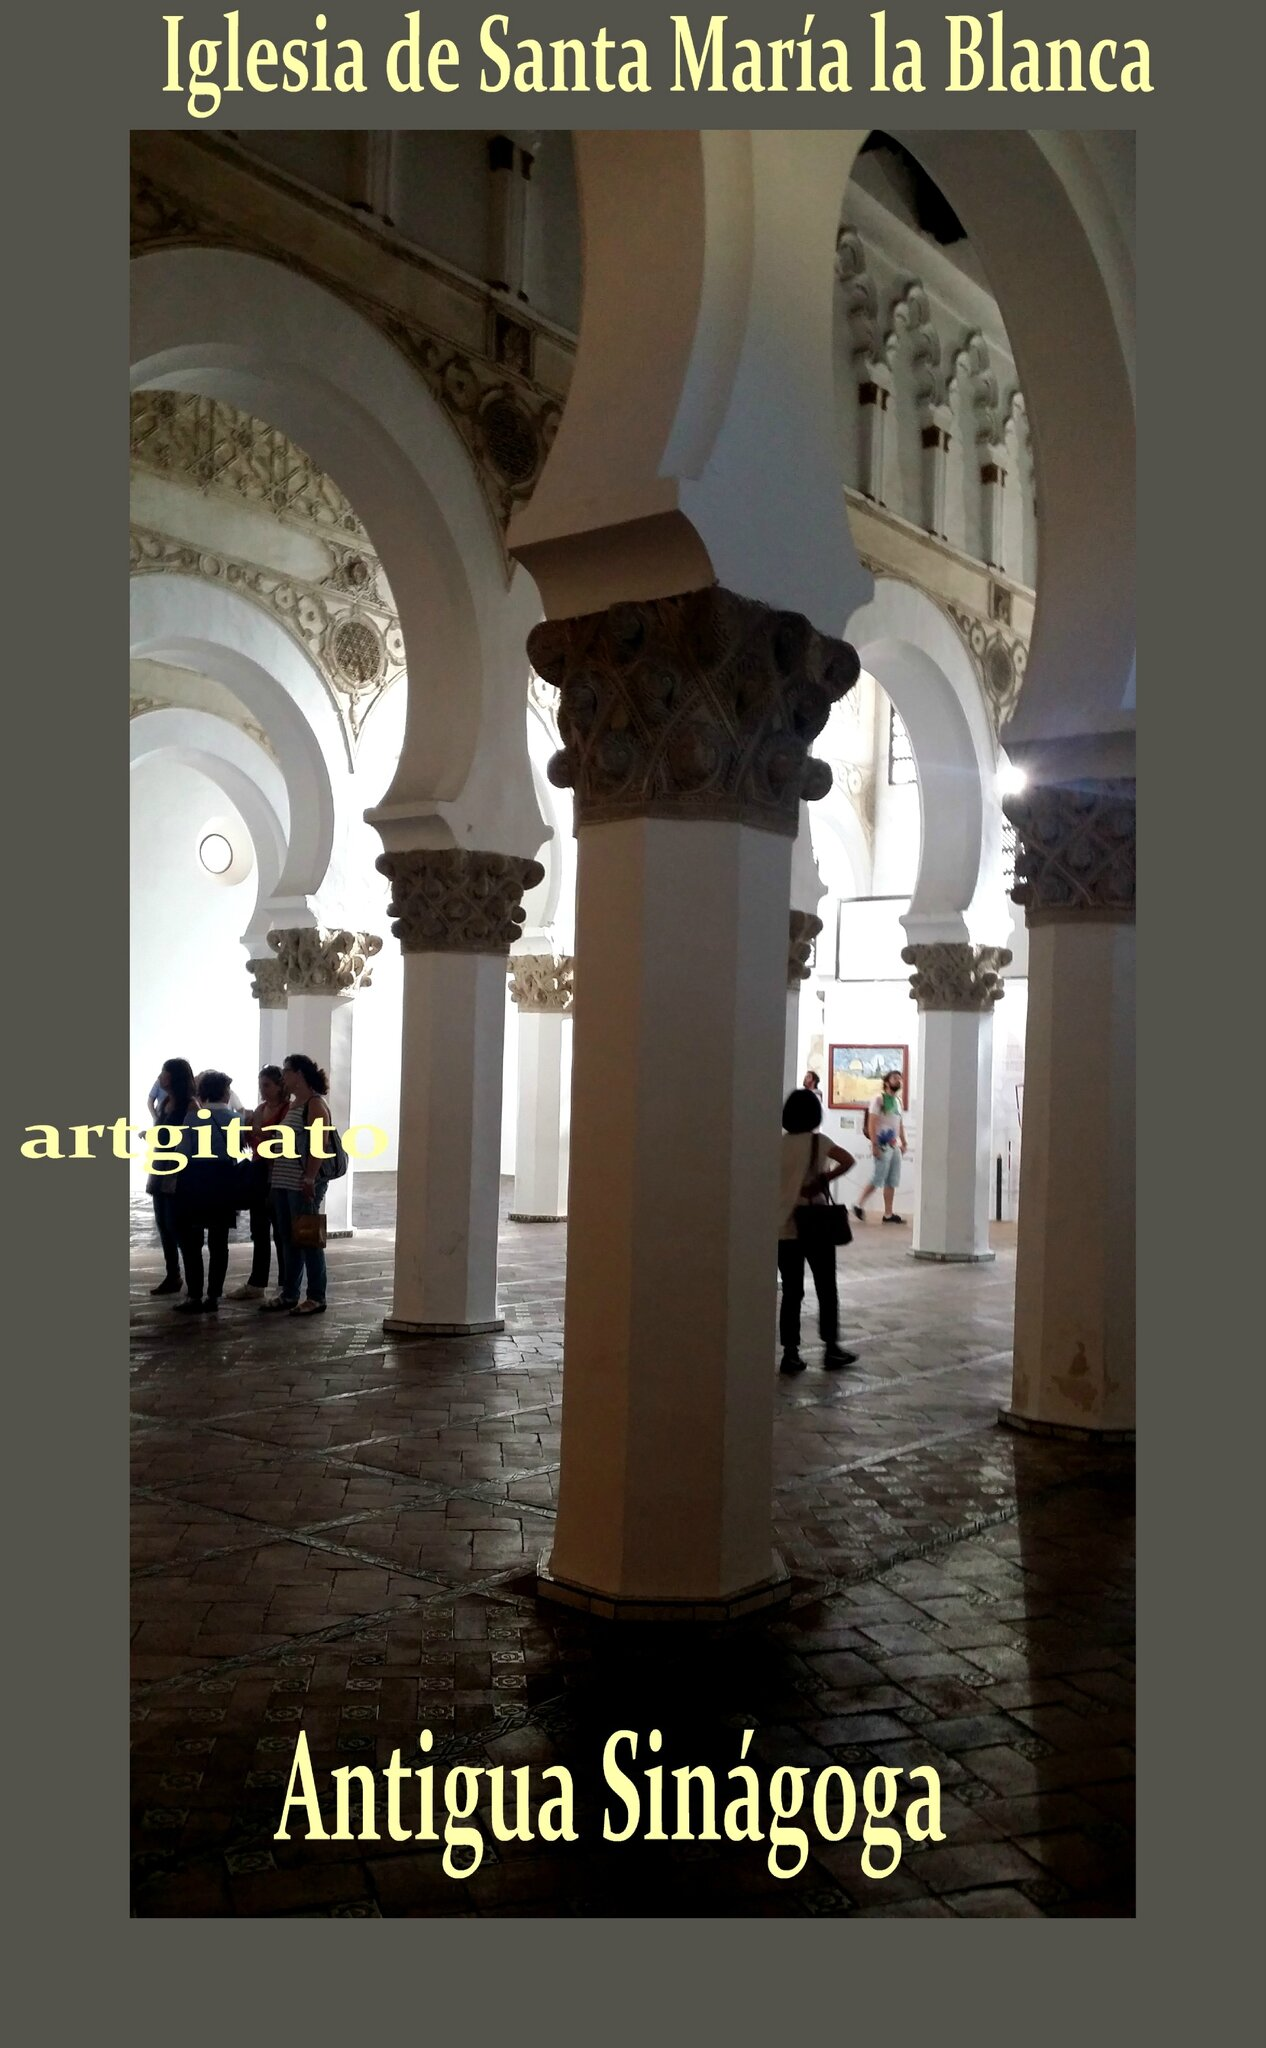 Toledo Santa Maria la Blanca Antigua Sinagoga Synagogue Antique Artgitato 10